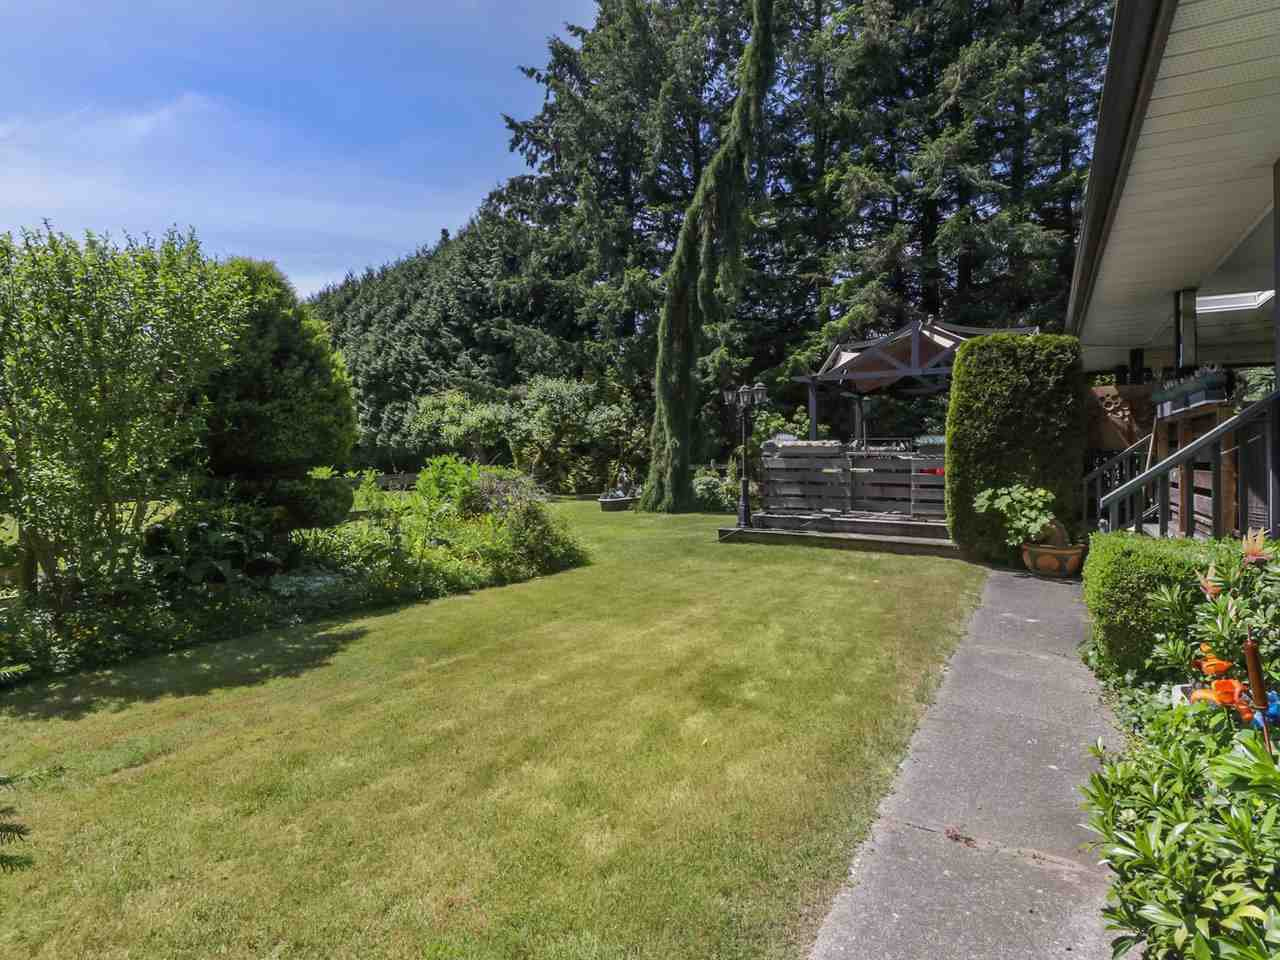 Photo 20: Photos: 13957 32 Avenue in Surrey: Elgin Chantrell House for sale (South Surrey White Rock)  : MLS®# R2466206